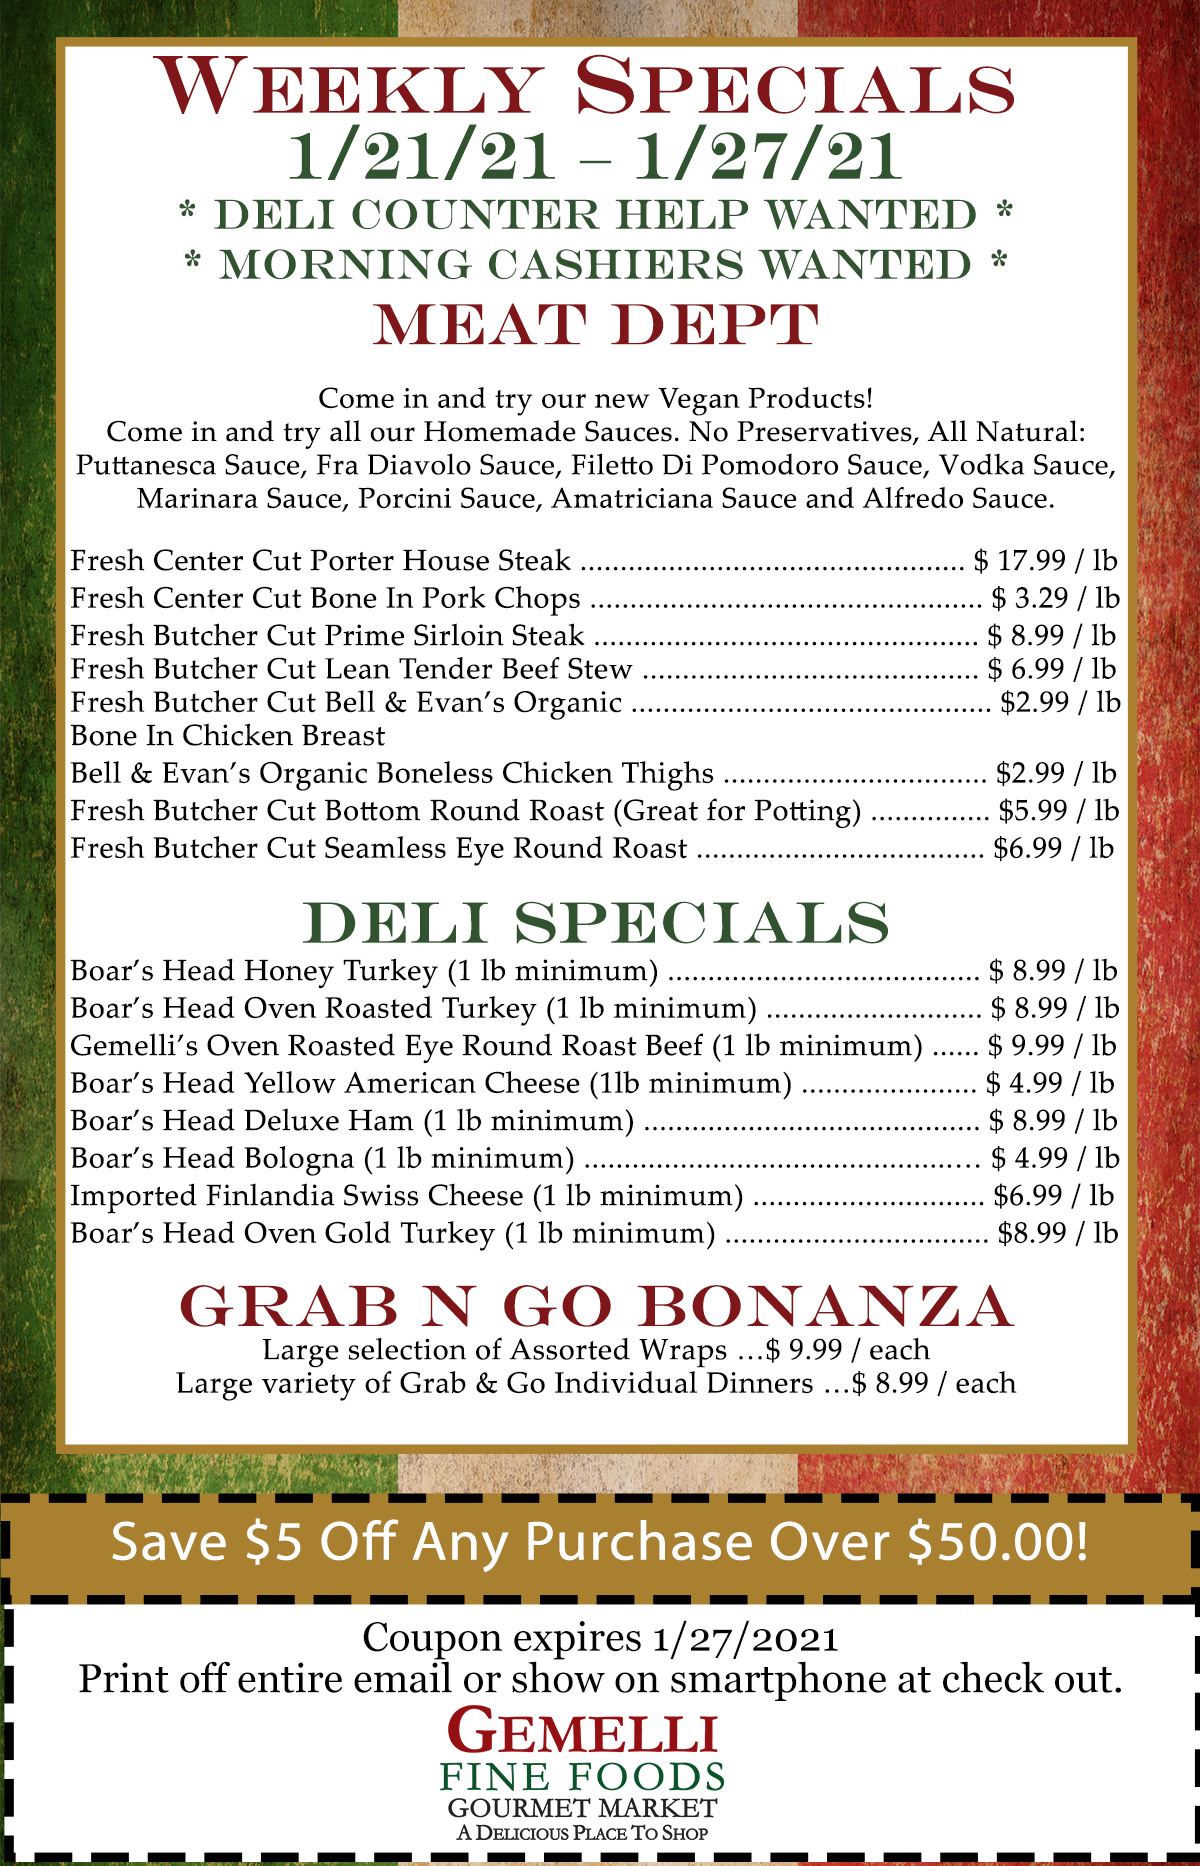 Weekly Specials 1/21/21 – 1/27/21.* Deli Counter Help Wanted ** Morning Cashiers Wanted *Meat Dept: Come in and try our new Vegan Products! Come in and try all our Homemade Sauces. No Preservatives, All Natural: Puttanesca Sauce, Fra Diavolo Sauce, Filetto Di Pomodoro Sauce, Vodka Sauce, Marinara Sauce, Porcini Sauce, Amatriciana Sauce and Alfredo Sauce.  Fresh Center Cut Porter House Steak ................................................. $ 17.99 / lb. Fresh Center Cut Bone In Pork Chops ................................................. $ 3.29 / lb. Fresh Butcher Cut Prime Sirloin Steak ................................................ $ 8.99 / lb. Fresh Butcher Cut Lean Tender Beef Stew .......................................... $ 6.99 / lb. Fresh Butcher Cut Bell & Evan's Organic Bone In Chicken Breast............................................. $2.99 / lb. Bell & Evan's Organic Boneless Chicken Thighs ................................. $2.99 / lb. Fresh Butcher Cut Bottom Round Roast (Great for Potting) ............... $5.99 / lb. Fresh Butcher Cut Seamless Eye Round Roast .................................... $6.99 / lb. Deli Specials: Boar's Head Honey Turkey (1 lb minimum) ....................................... $ 8.99 / lb.  Boar's Head Oven Roasted Turkey (1 lb minimum) ........................... $ 8.99 / lb. Gemelli's Oven Roasted Eye Round Roast Beef (1 lb minimum) ...... $ 9.99 / lb. Boar's Head Yellow American Cheese (1lb minimum) ...................... $ 4.99 / lb.  Boar's Head Deluxe Ham (1 lb minimum) .......................................... $ 8.99 / lb.  Boar's Head Bologna (1 lb minimum) ..............................................… $ 4.99 / lb. Imported Finlandia Swiss Cheese (1 lb minimum) ............................. $6.99 / lb.  Boar's Head Oven Gold Turkey (1 lb minimum) ................................. $8.99 / lb.  Grab N Go Bonanza: Large selection of Assorted Wraps …$ 9.99 / each. Large variety of Grab & Go Individual Dinners …$ 8.99 / each Coupon:	$5.00 off any purchase of $50.00 or more (expires January 27, 2021).